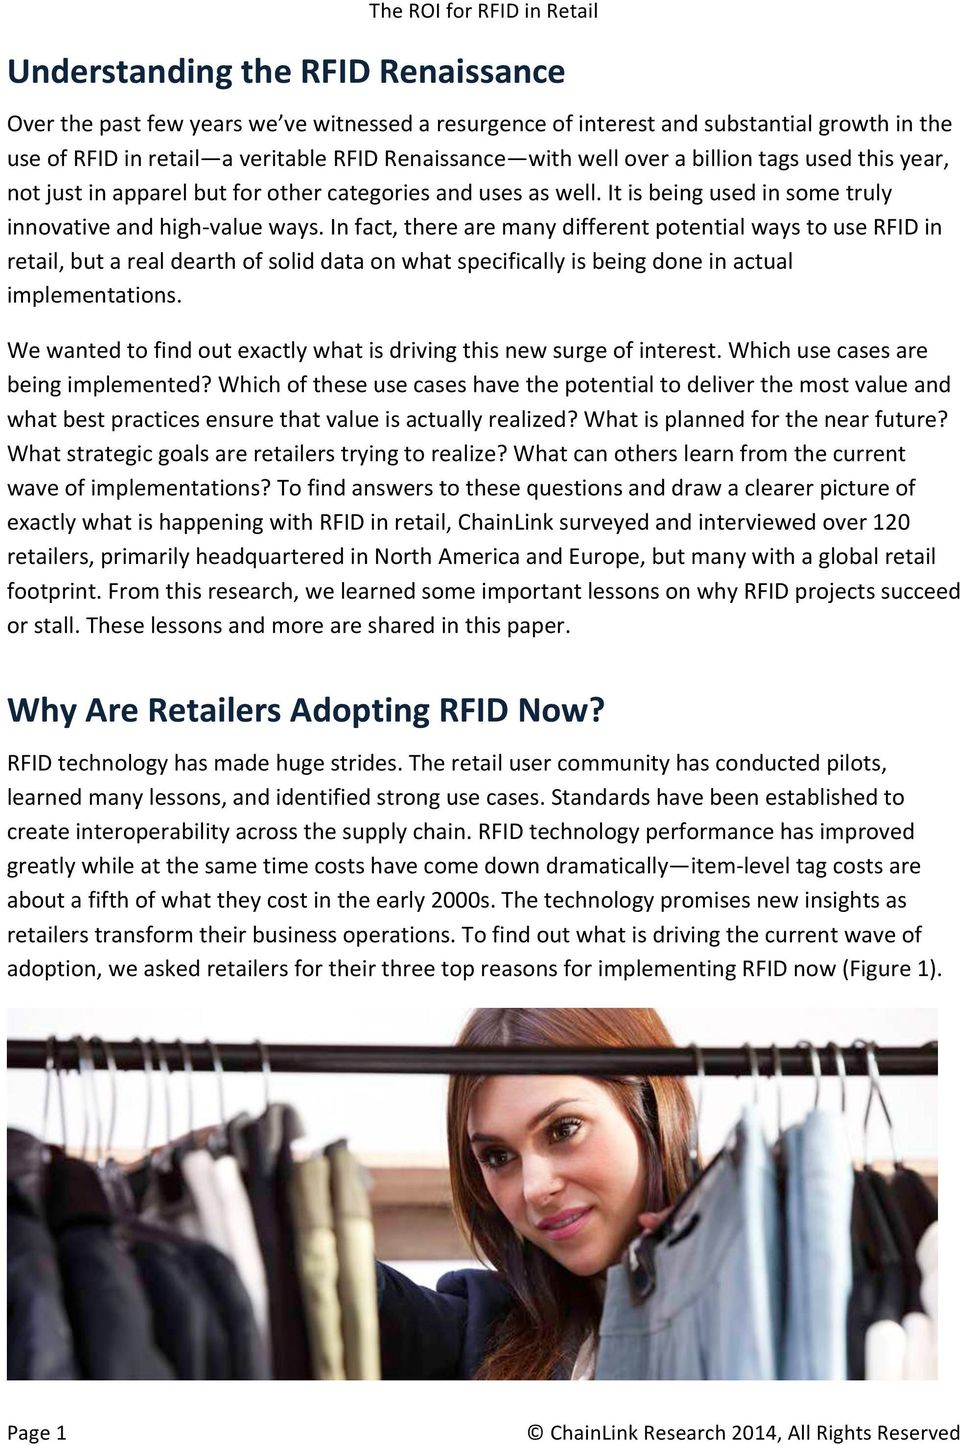 In fact, there are many different potential ways to use RFID in retail, but a real dearth of solid data on what specifically is being done in actual implementations.